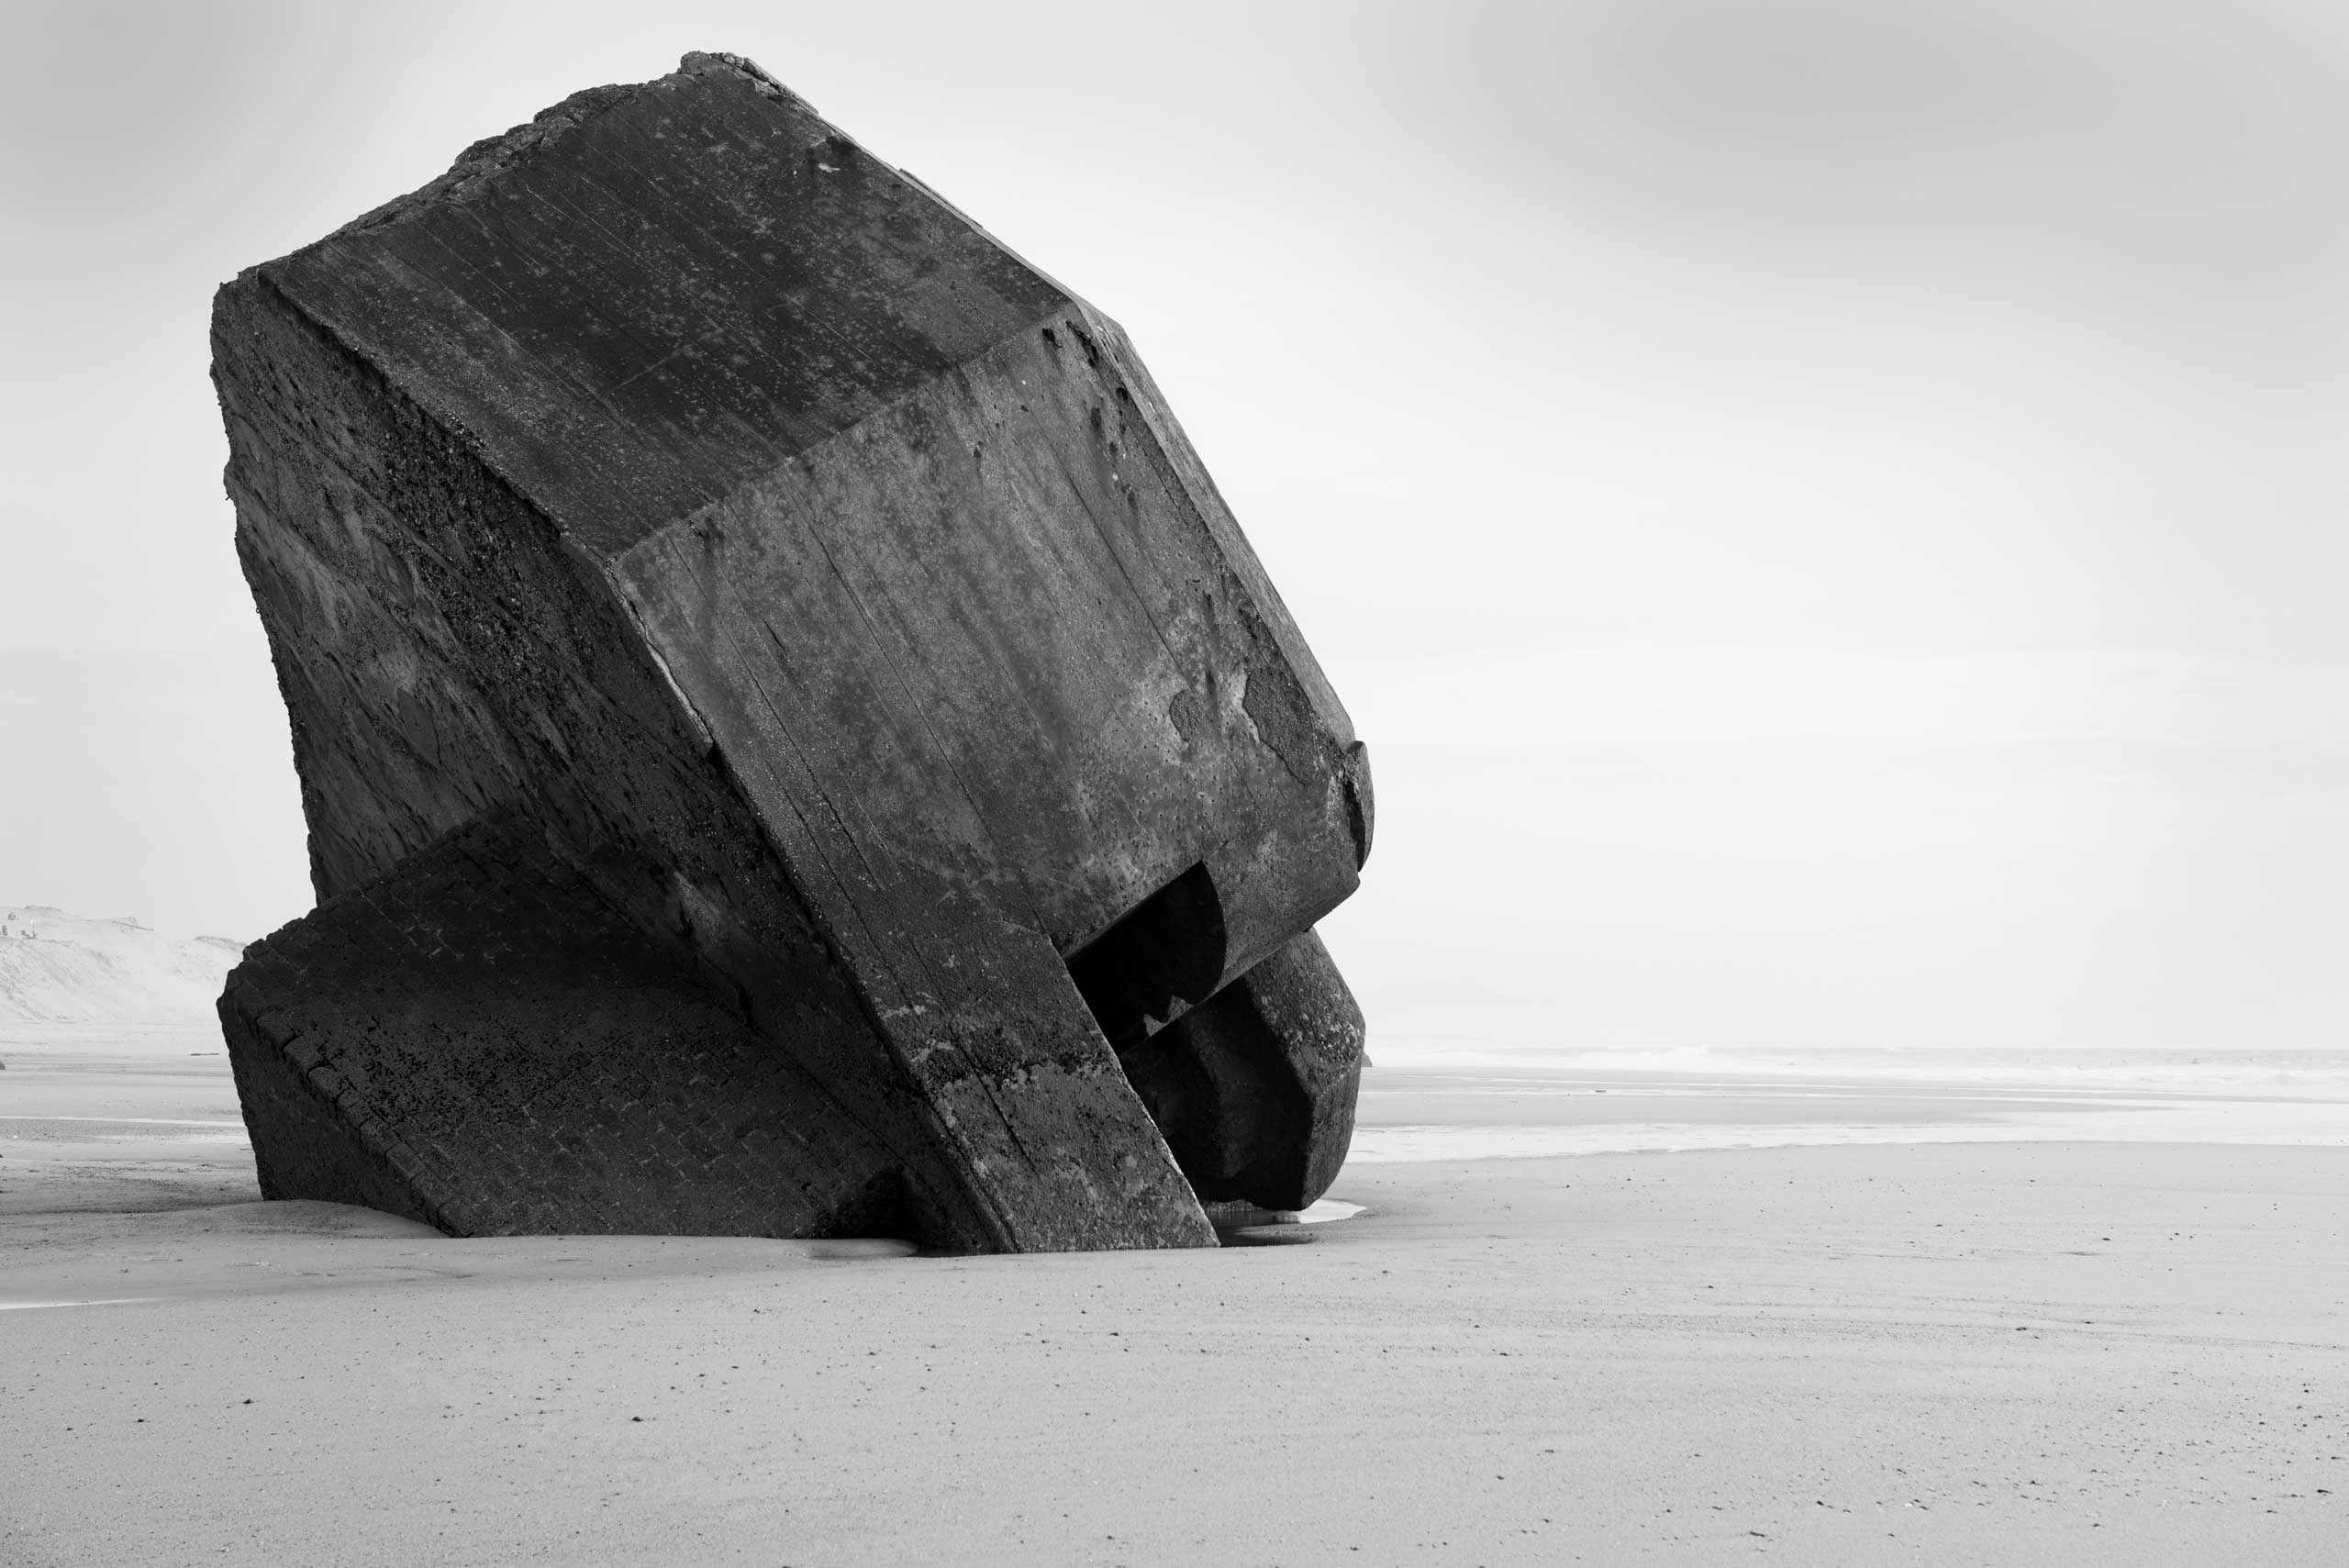 The remnants of a concrete defensive structure used by the German Army during World War II juts out of the sand along a beach in nothern France along the route of the Atlantic Wall (Atlantikwall in German).